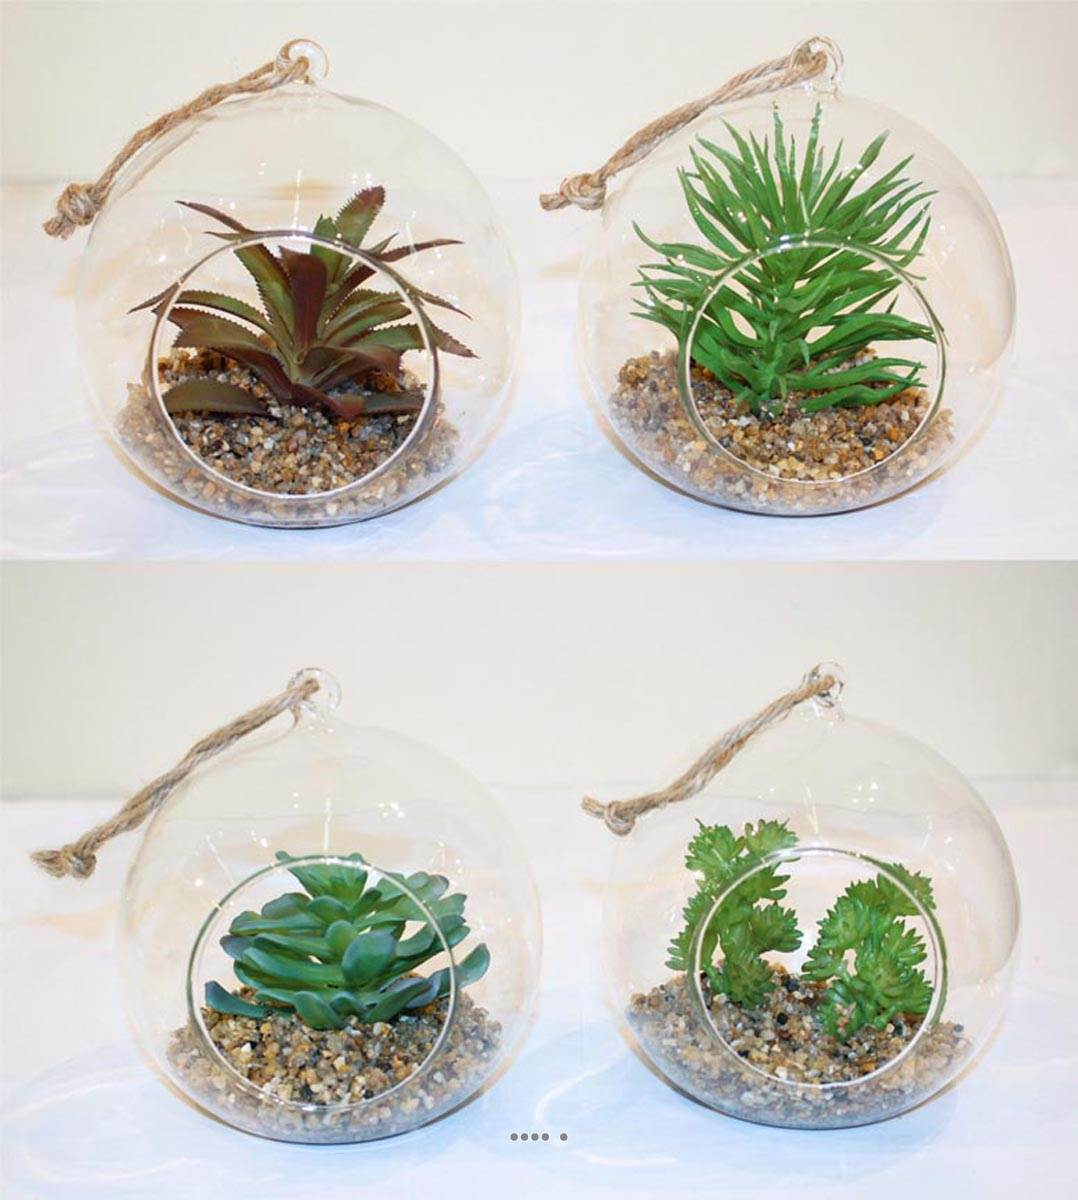 plante grasse artificielle succulente cactee en bulle de verre avec corde du site. Black Bedroom Furniture Sets. Home Design Ideas